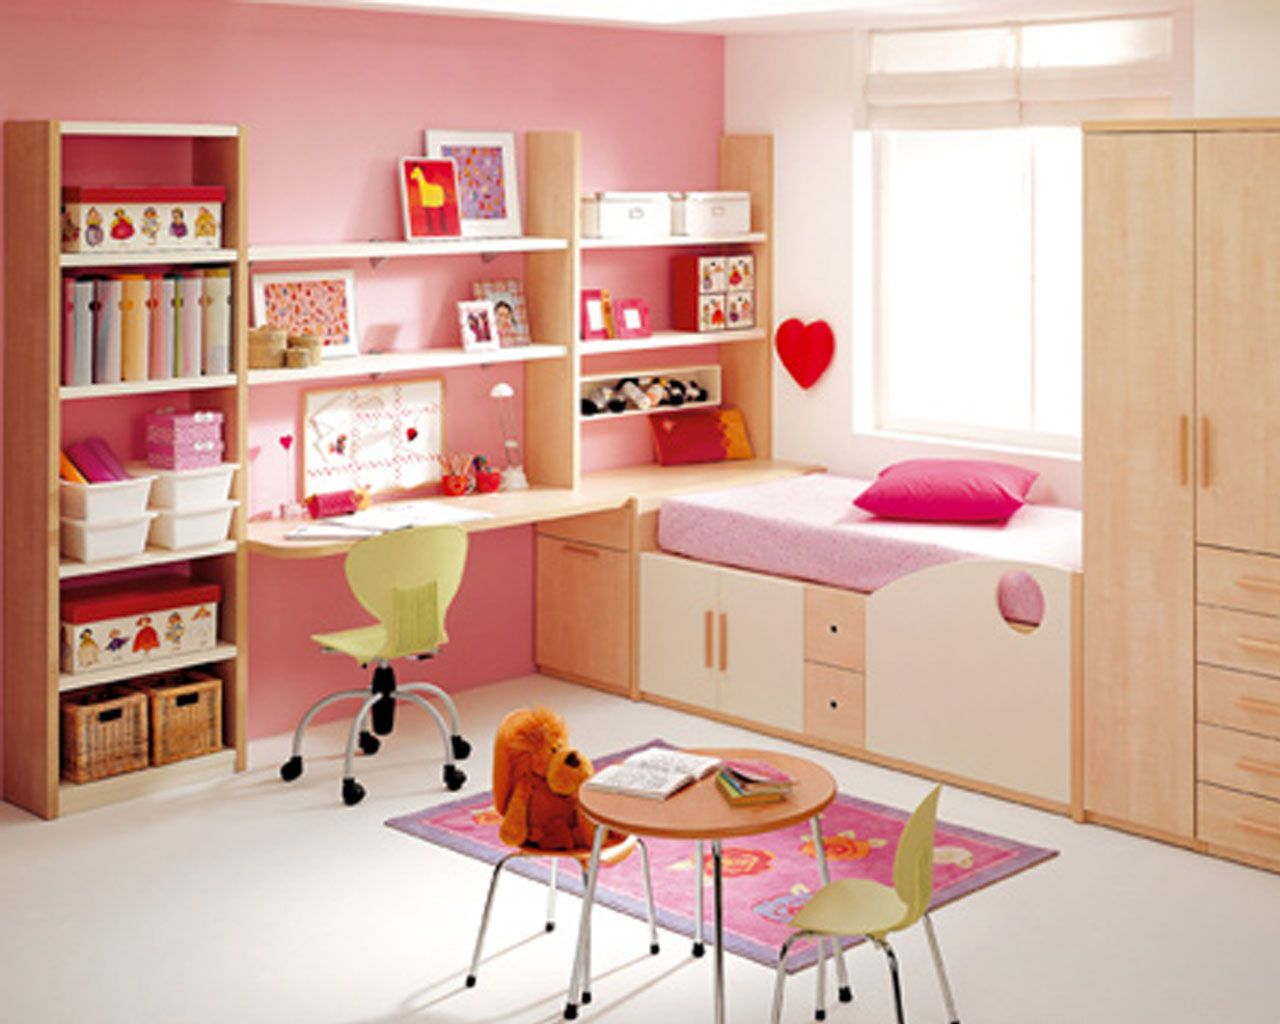 Girls Bedroom Designs 2013 girly bedroom ideas for small rooms oldsoulstyle | bedroom gallery